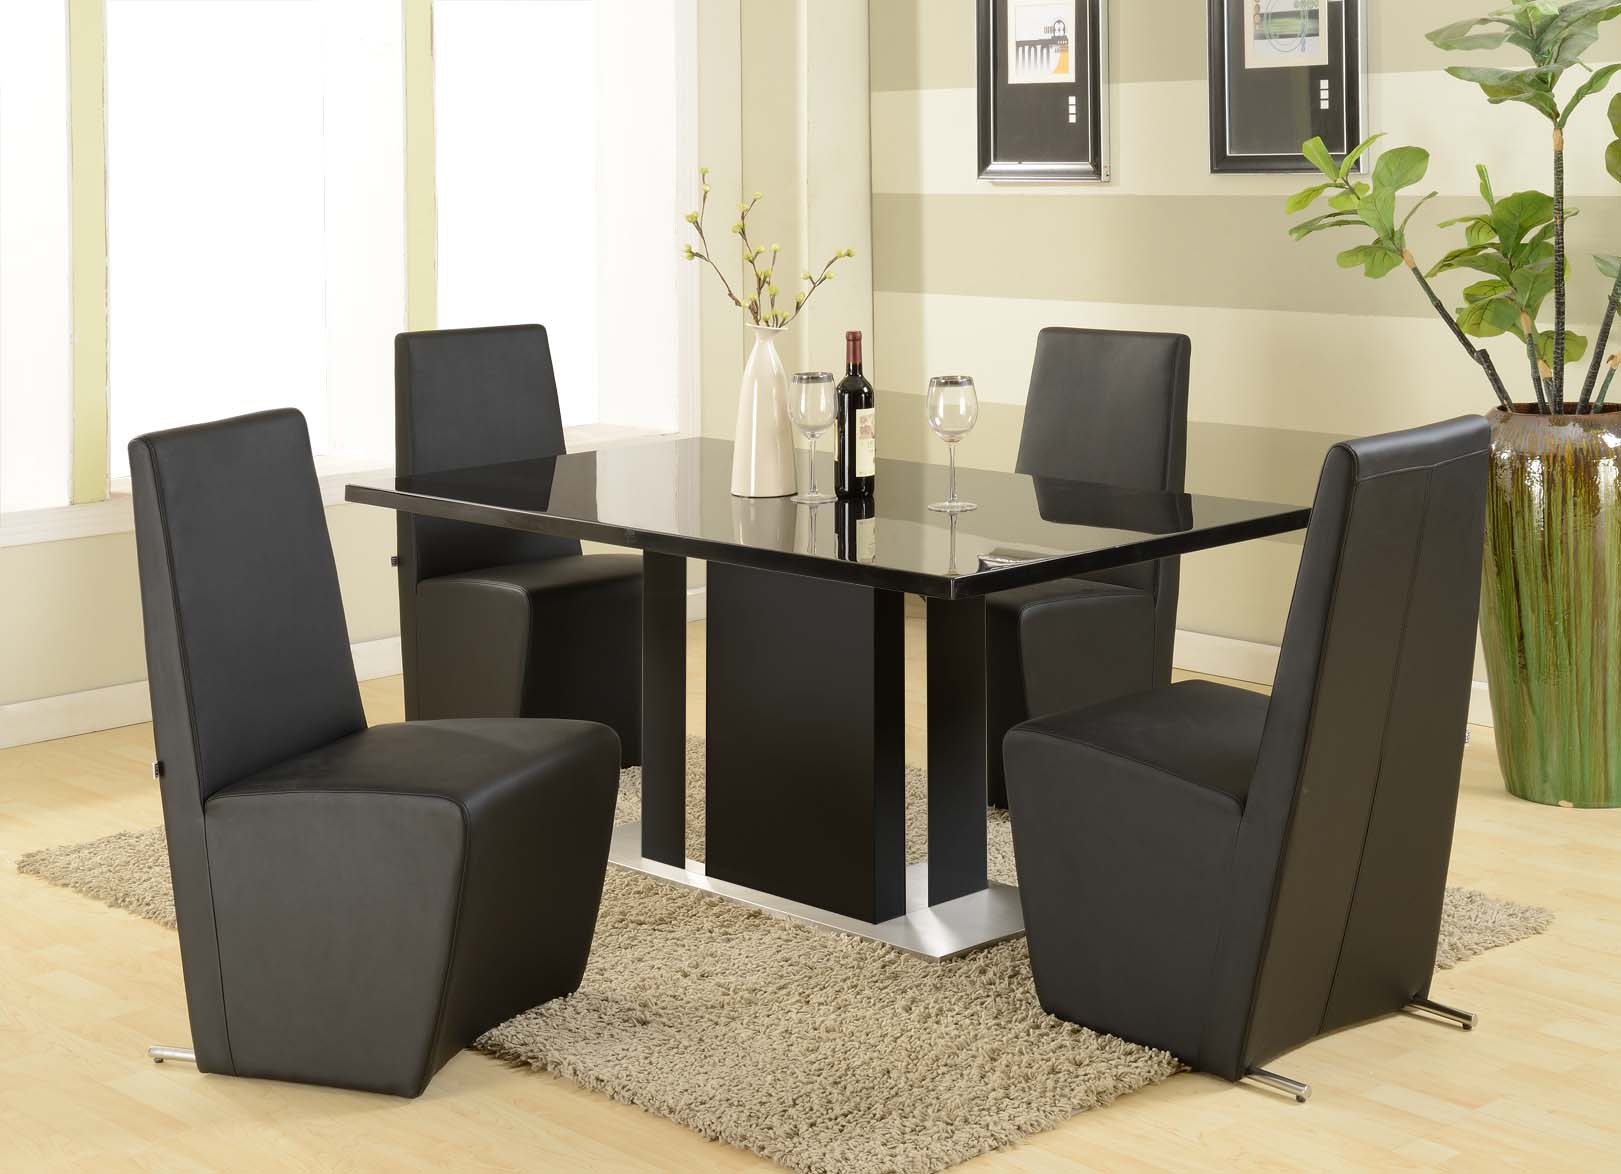 Modern furniture table home design roosa for Black kitchen table set